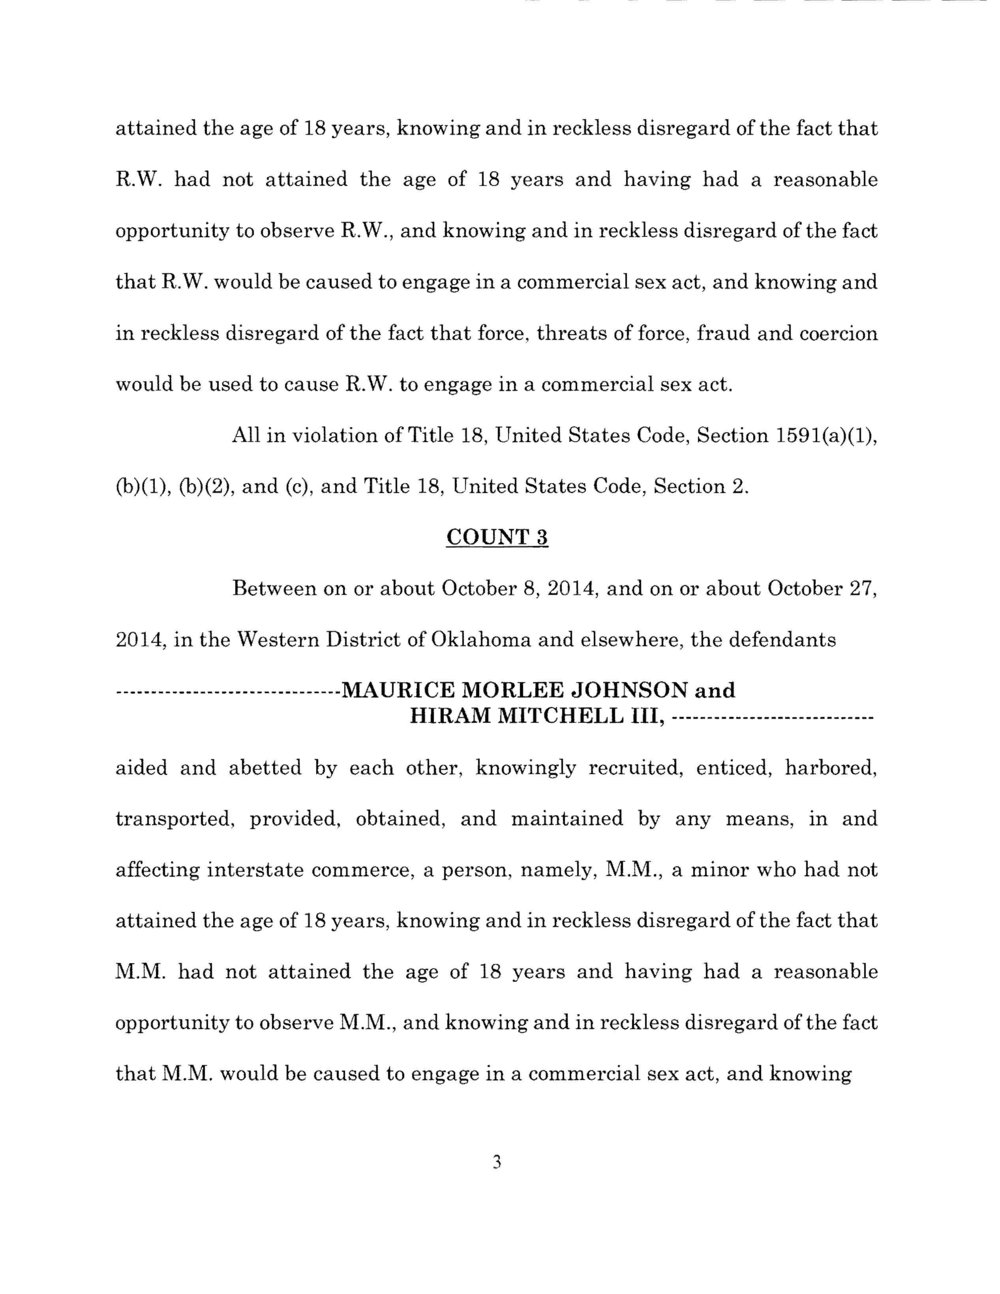 Maurice Johnson Indictment_Page_03_Image_0001.jpg